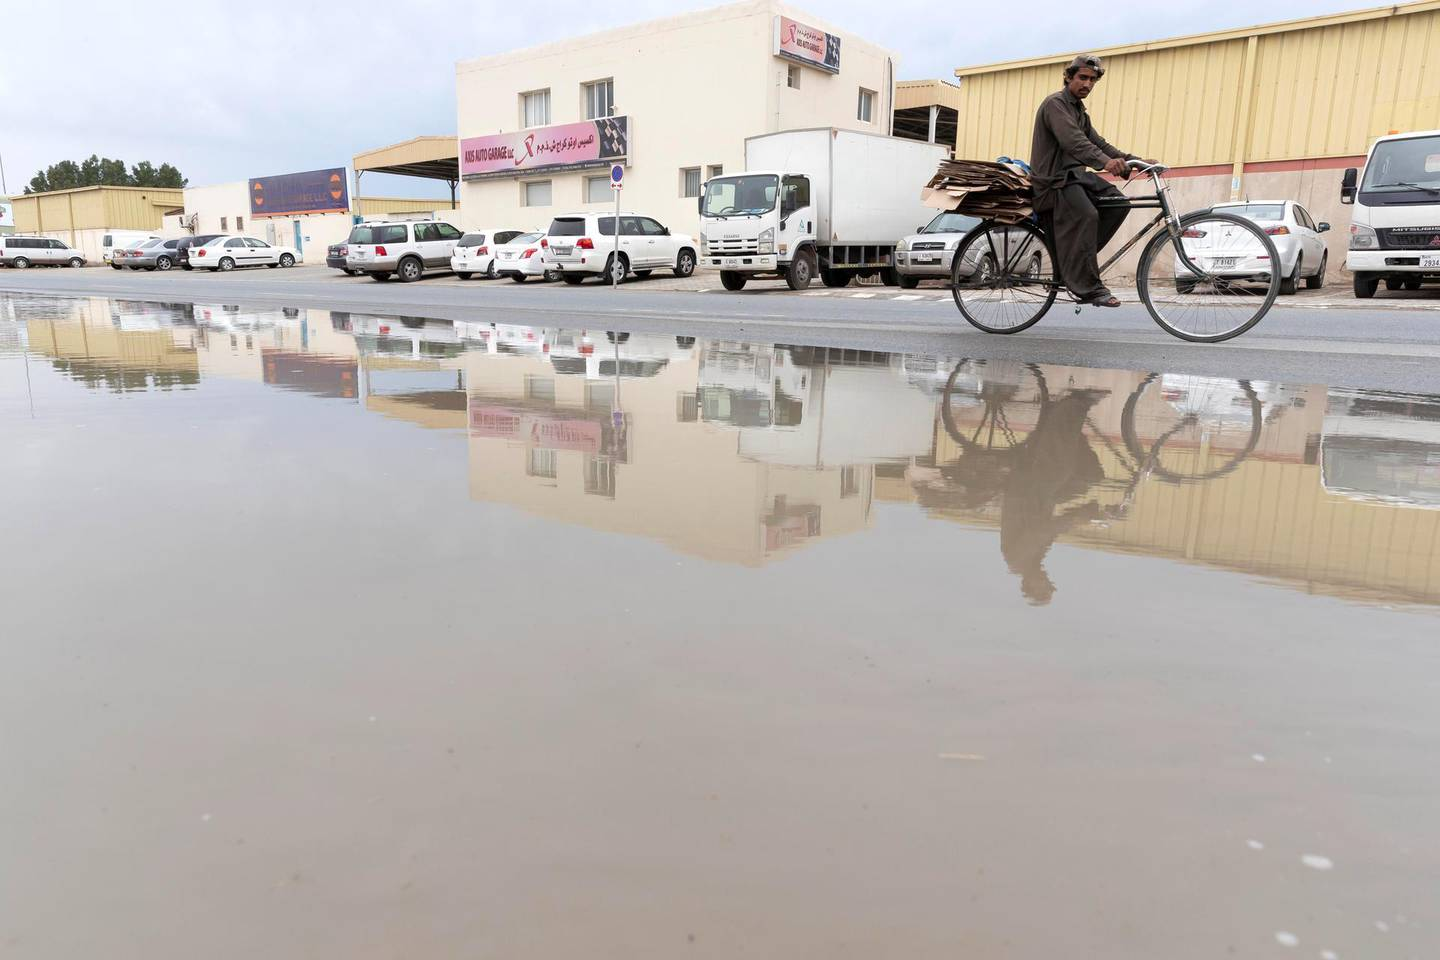 DUBAI, UNITED ARAB EMIRATES. 10 APRIL 2019. Moderate rainfall in Dubai during the night with light drizzle in the morning hours created some road obstructions for motorists. (Photo: Antonie Robertson/The National) Journalist: None. Section: National.